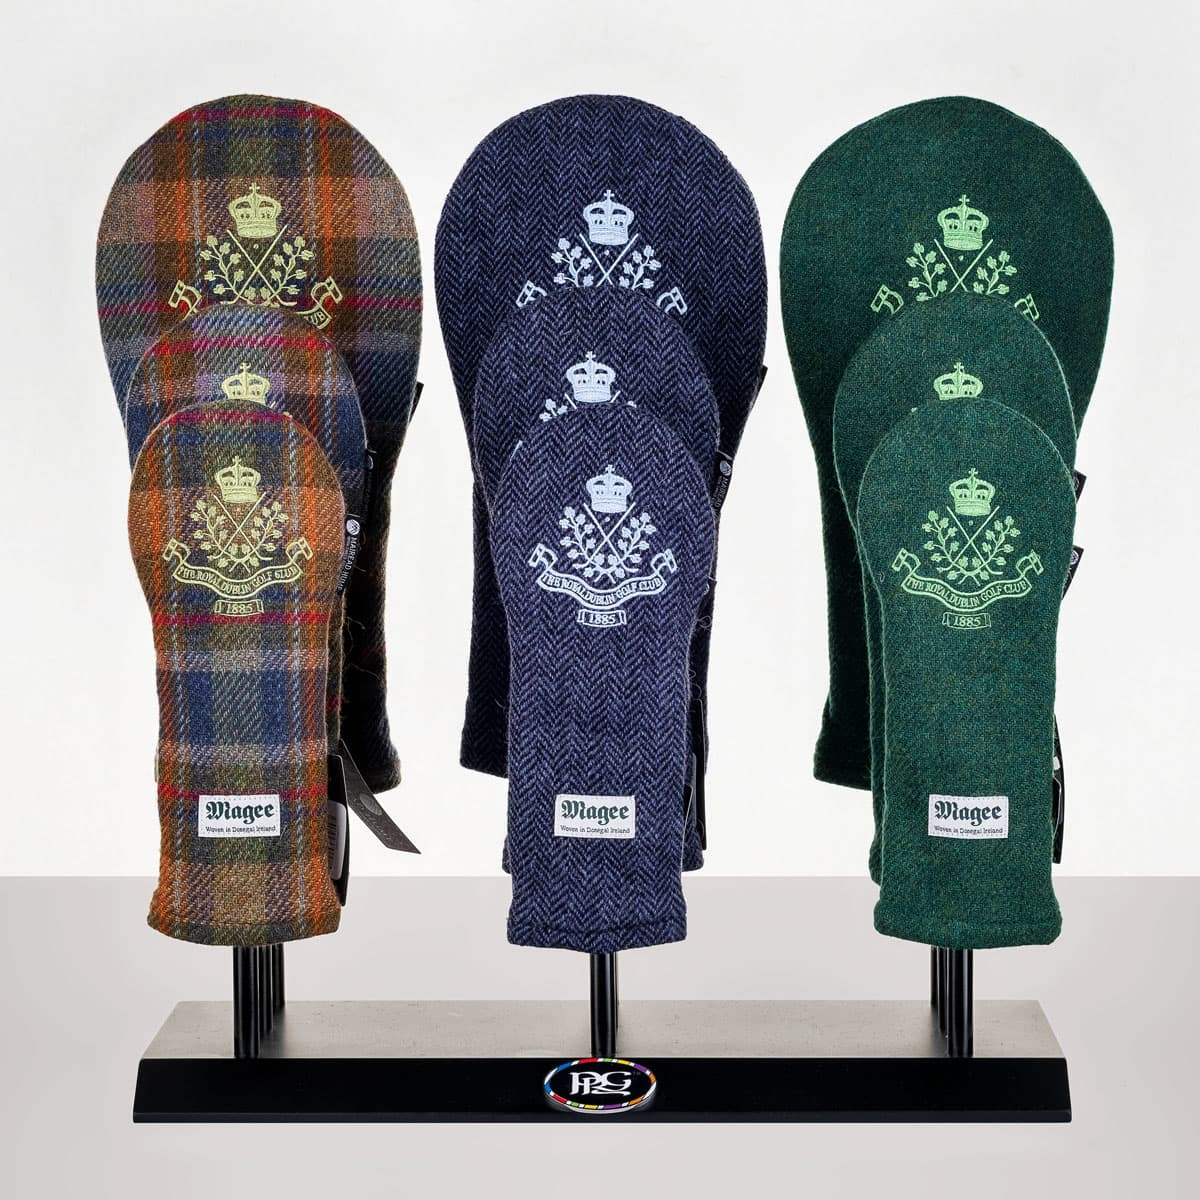 Donegal tweed headcovers from €79.95 to €99.95